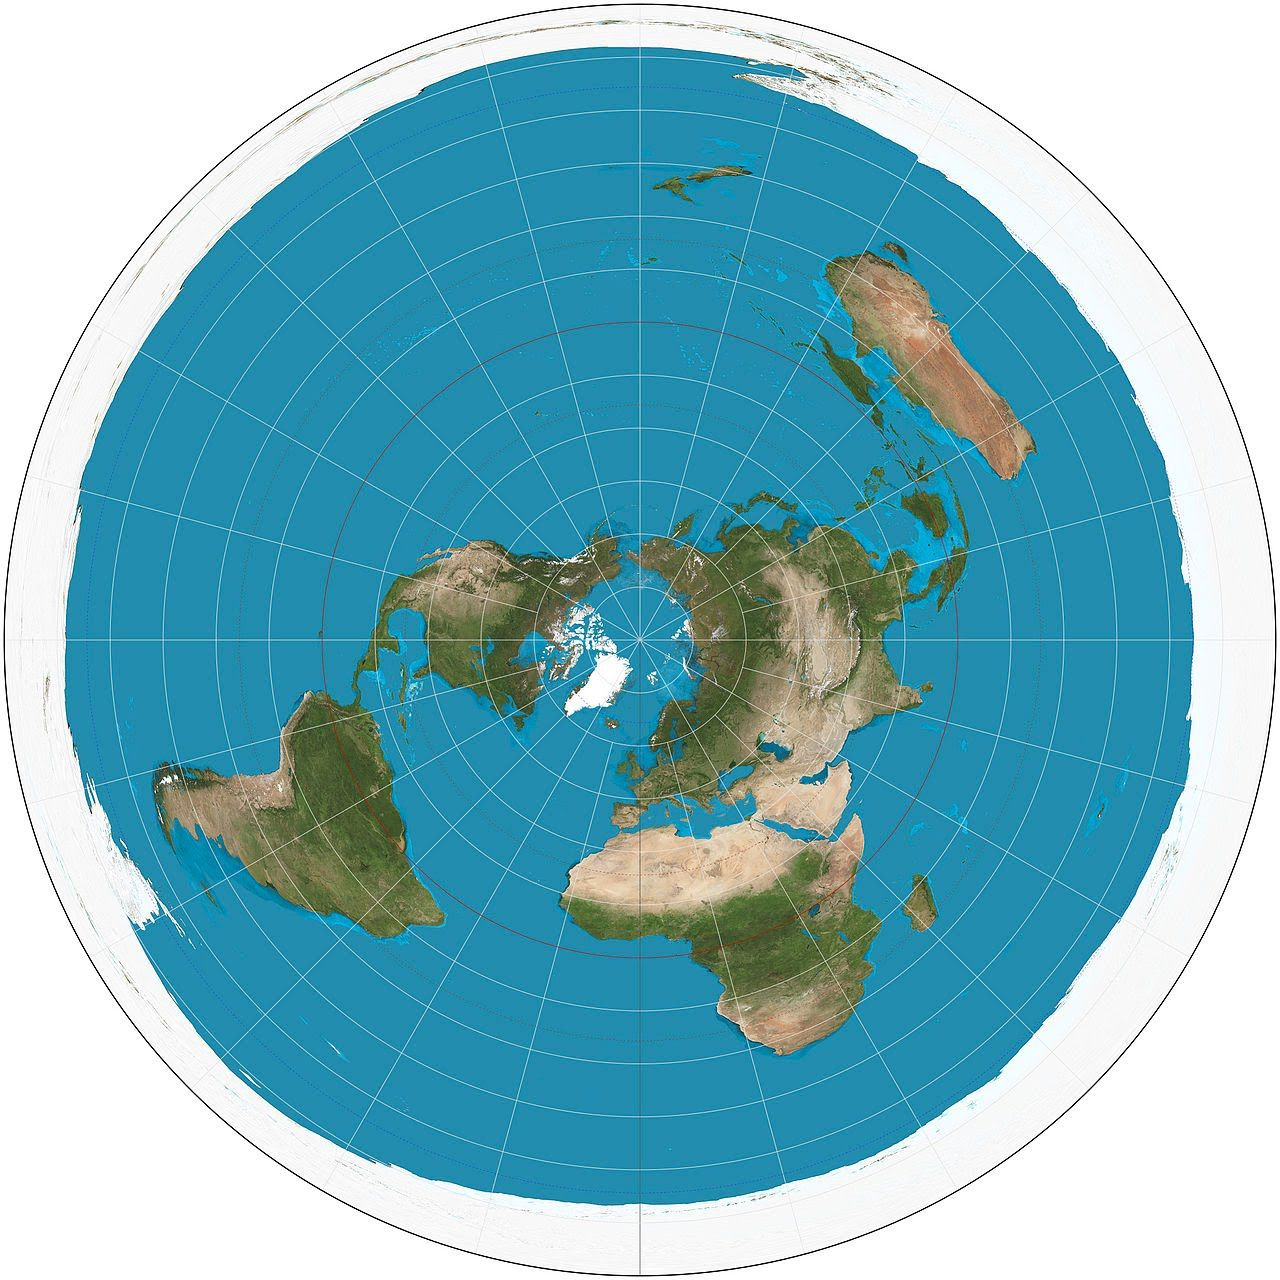 Flat earth clues part 3 map makers subtitles in any language flat earth clues part 3 map makers subtitles in any language mark gumiabroncs Images